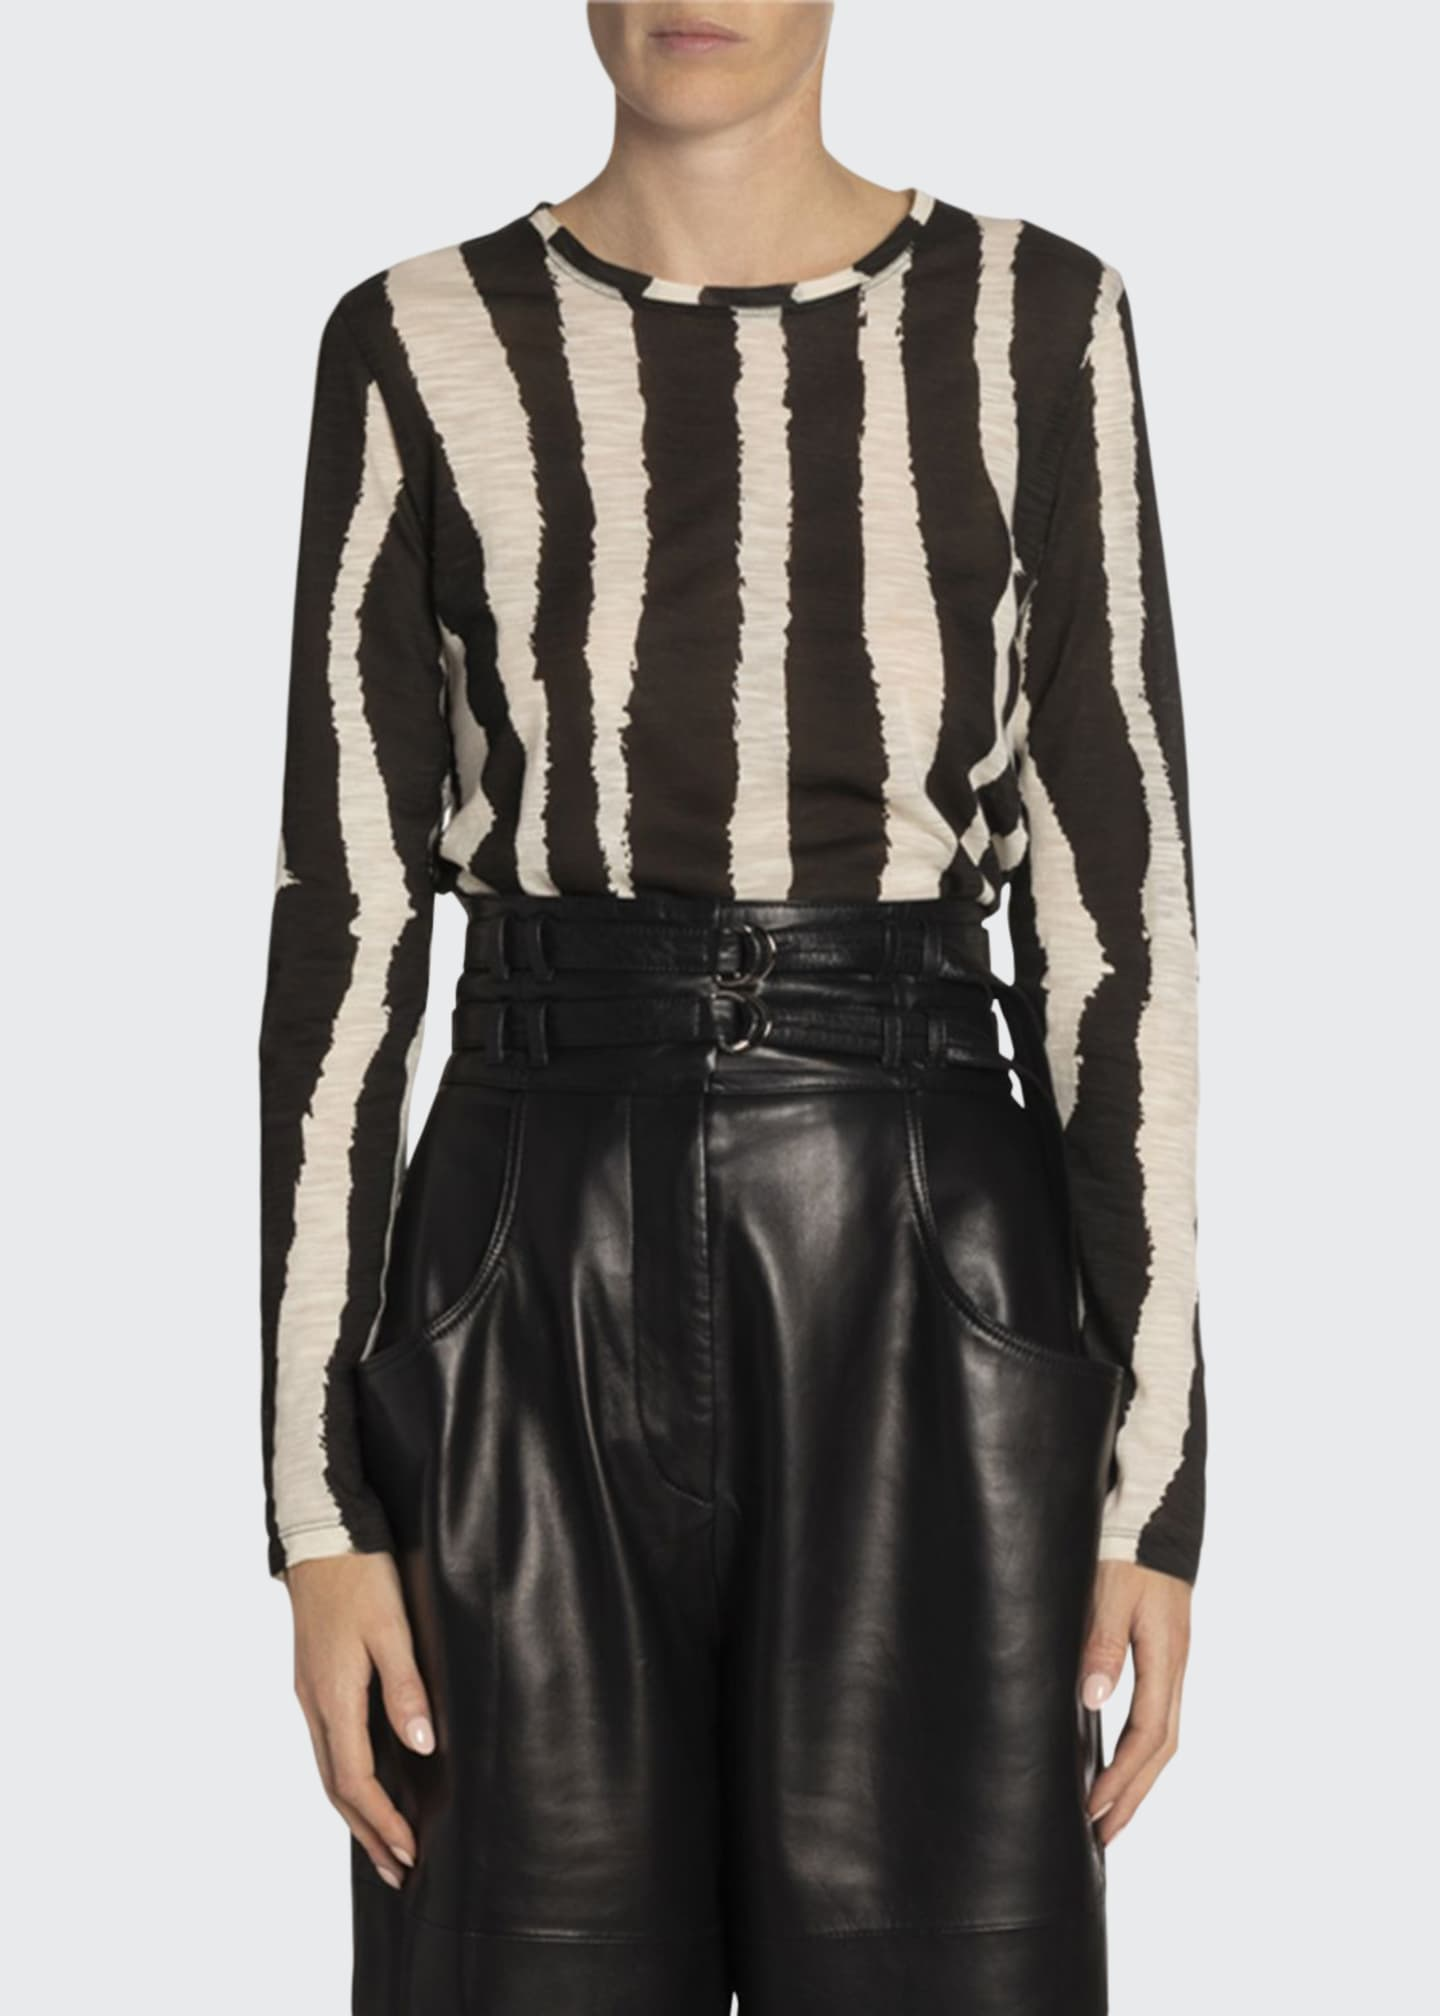 Proenza Schouler Zebra-Striped Long-Sleeve Tee